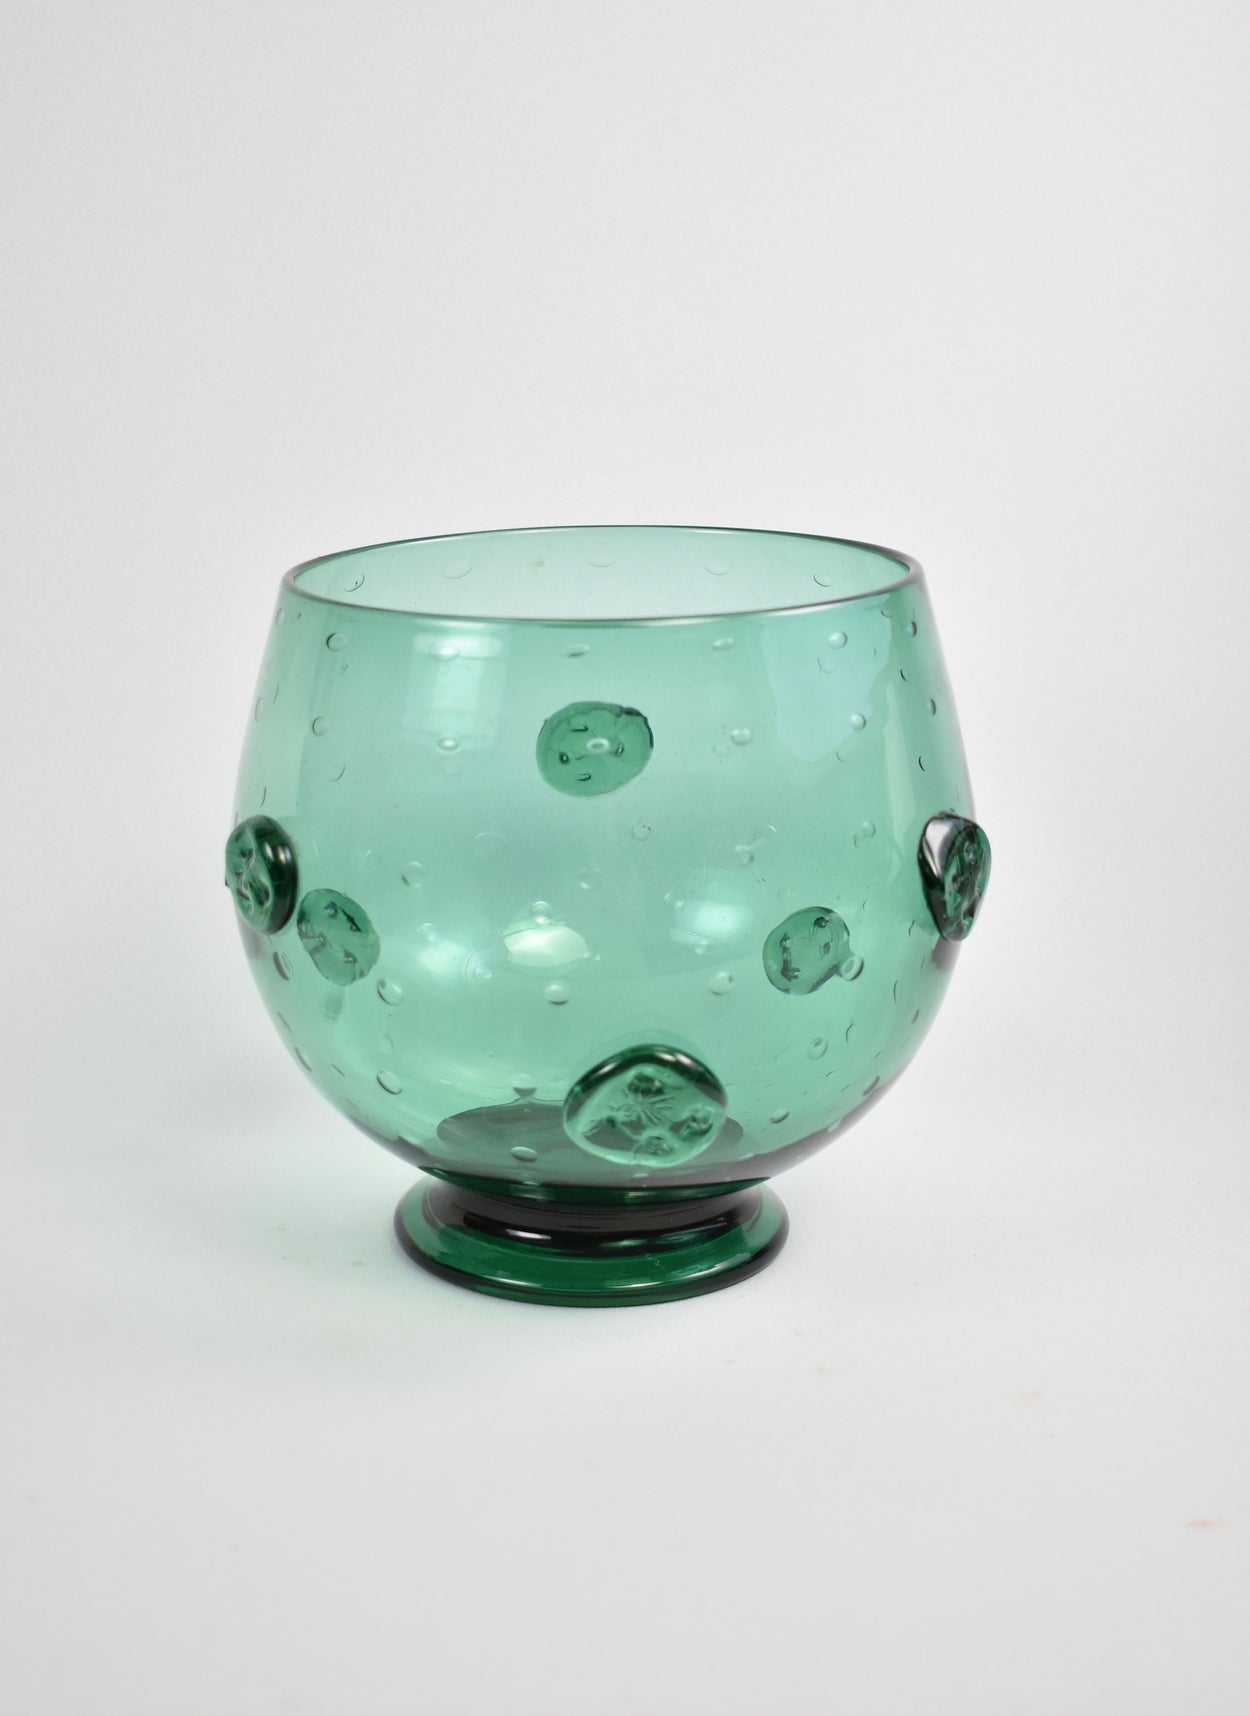 Teal Centerpiece Bowl